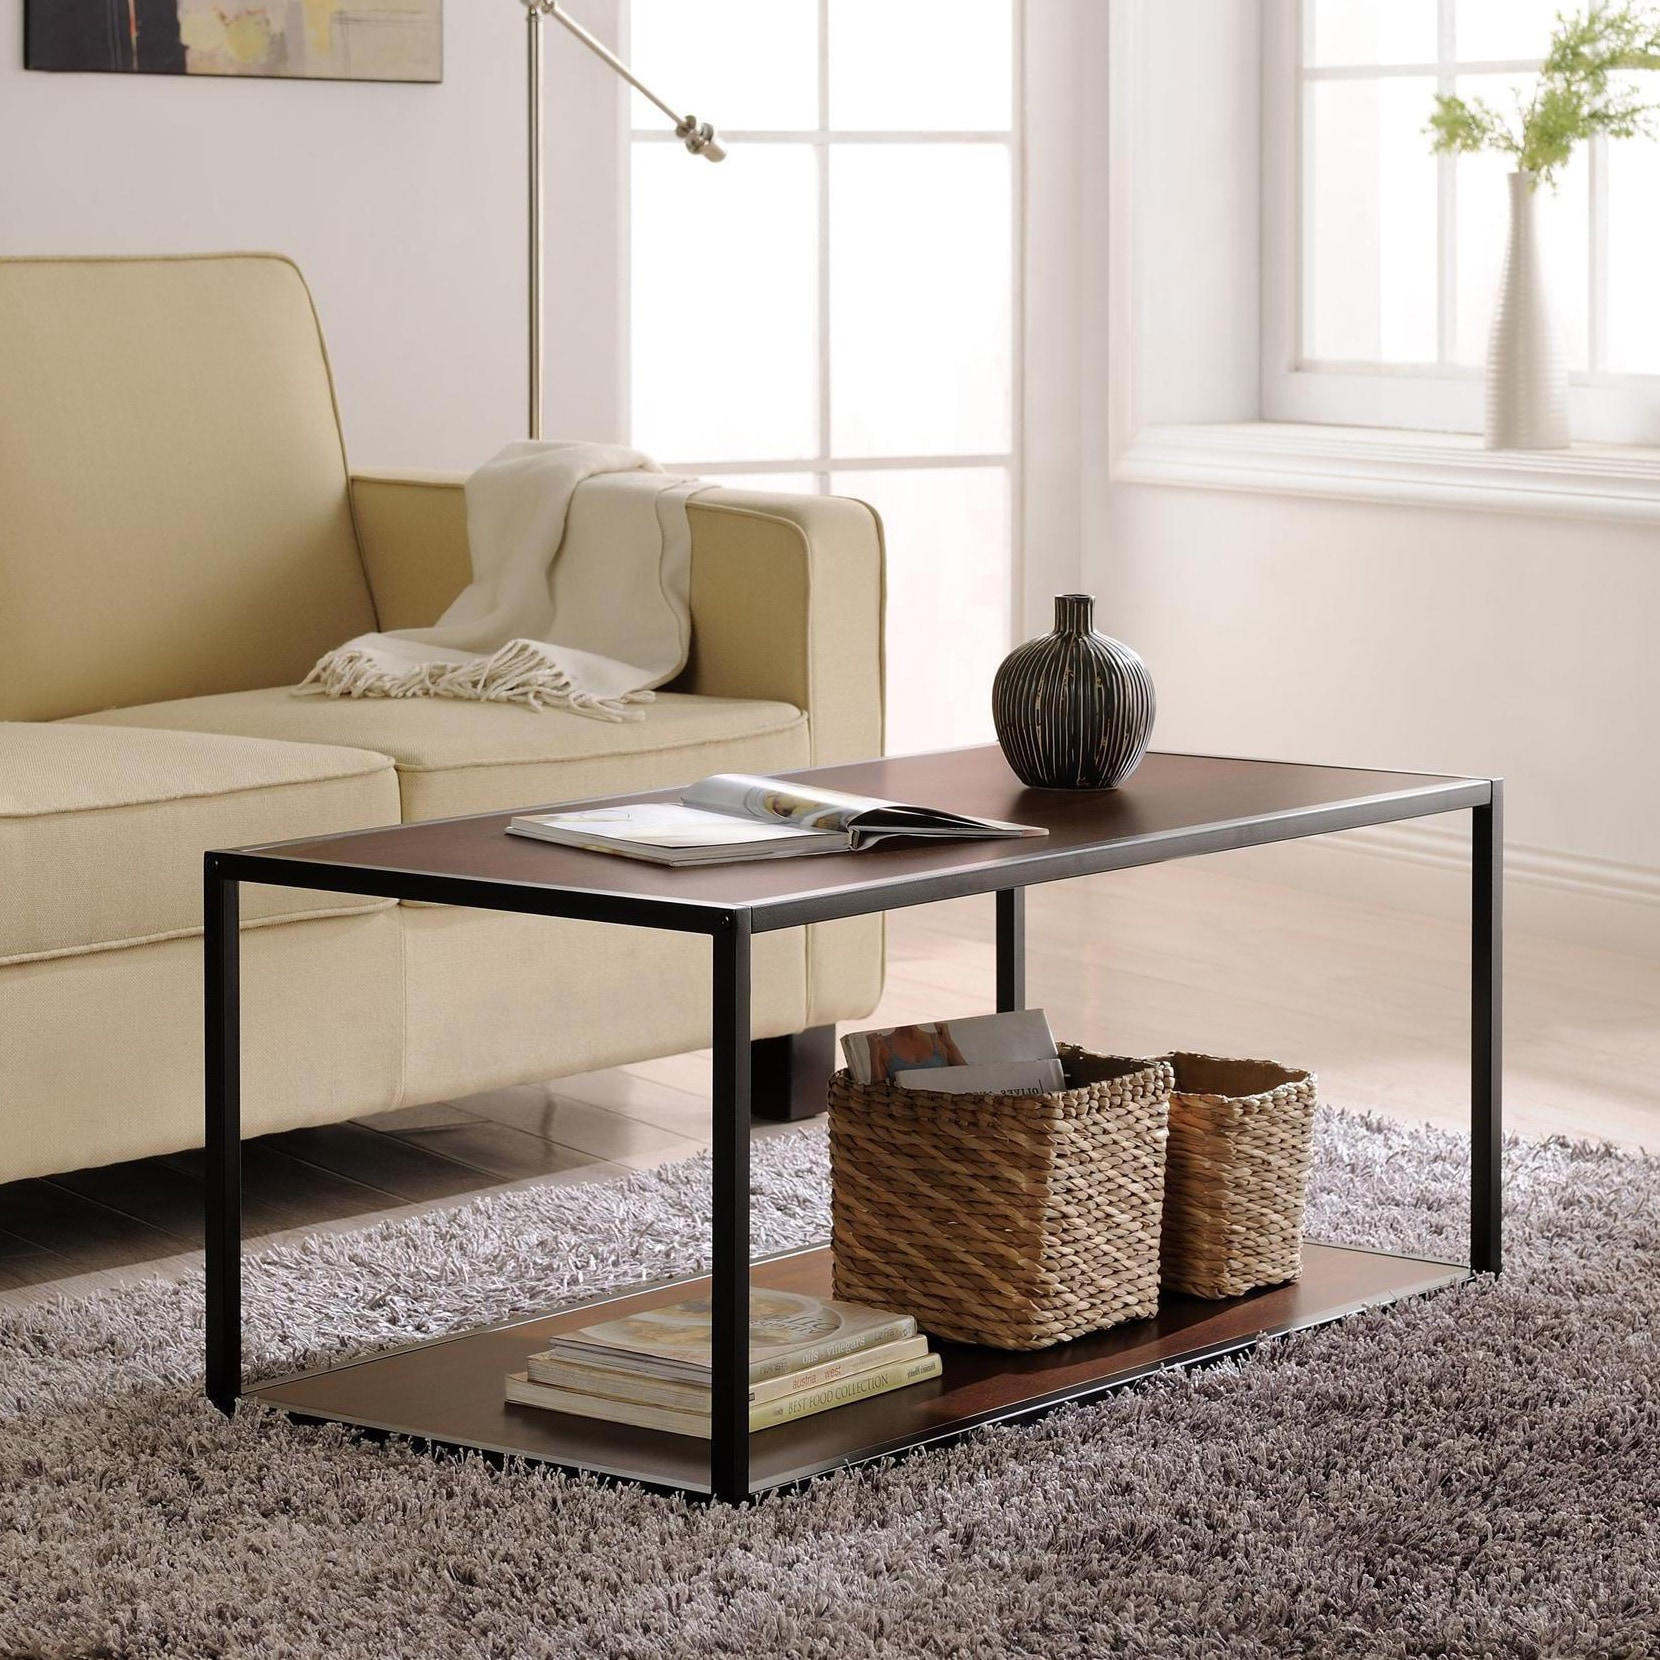 wicker park haddon metal frame coffee table - Metal Frame Coffee Table